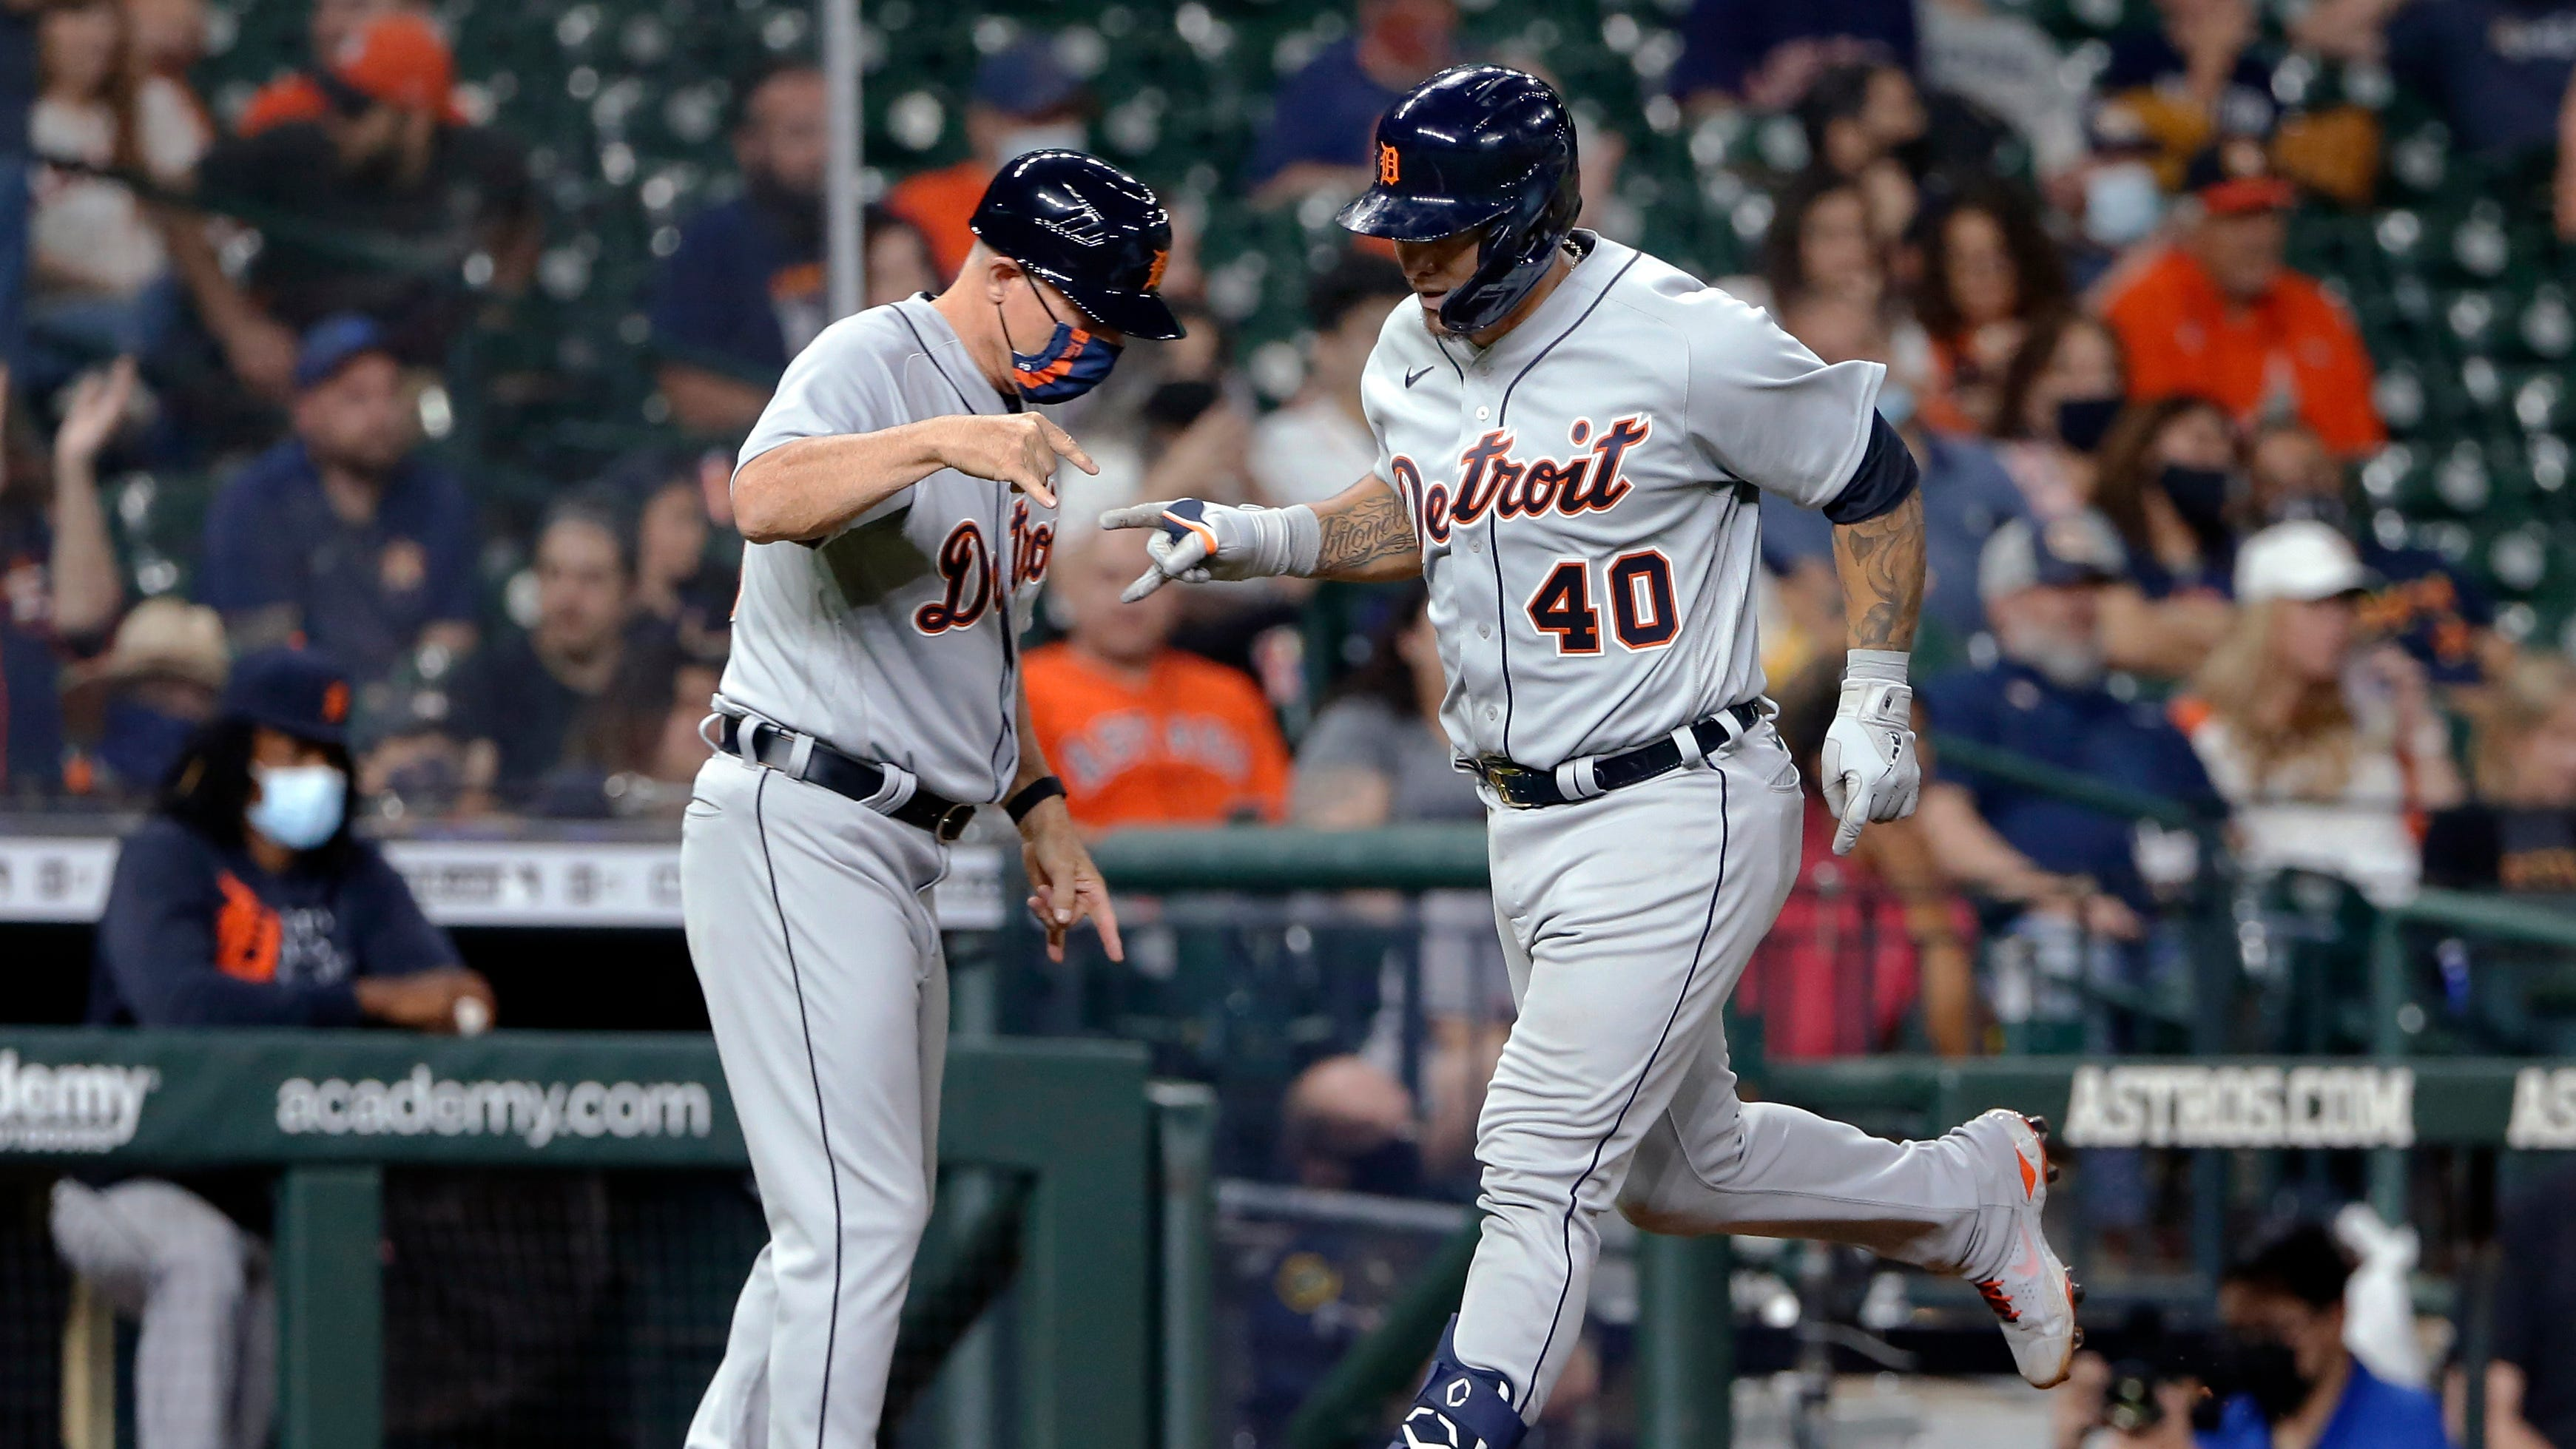 Detroit Tigers third base coach Chip Hale, left, celebrates with Wilson Ramos (40), who had hit a two-run home run against the Houston Astros during the fifth inning of a baseball game Tuesday, April 13, 2021, in Houston.